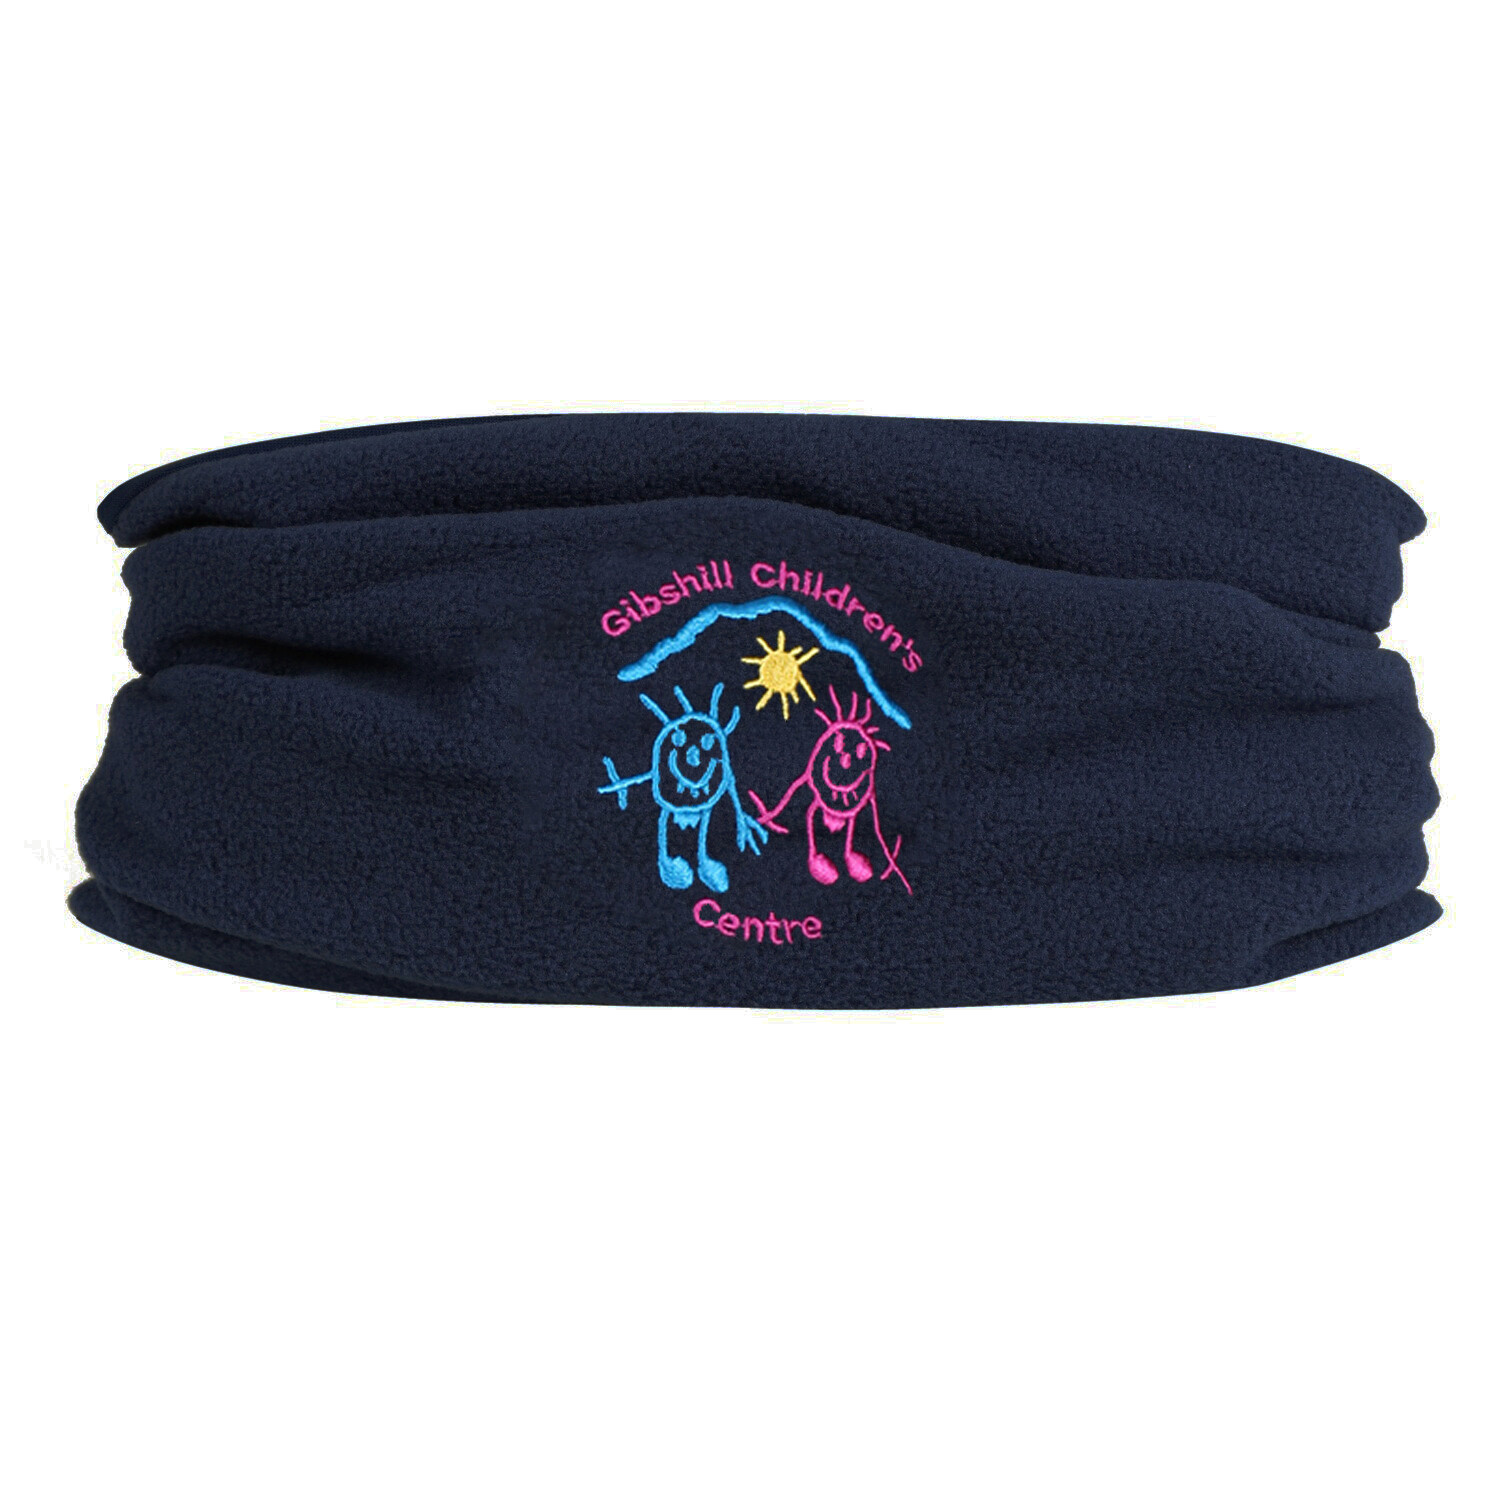 Gibshill Childrens Centre Staff Snood (RCSB920)